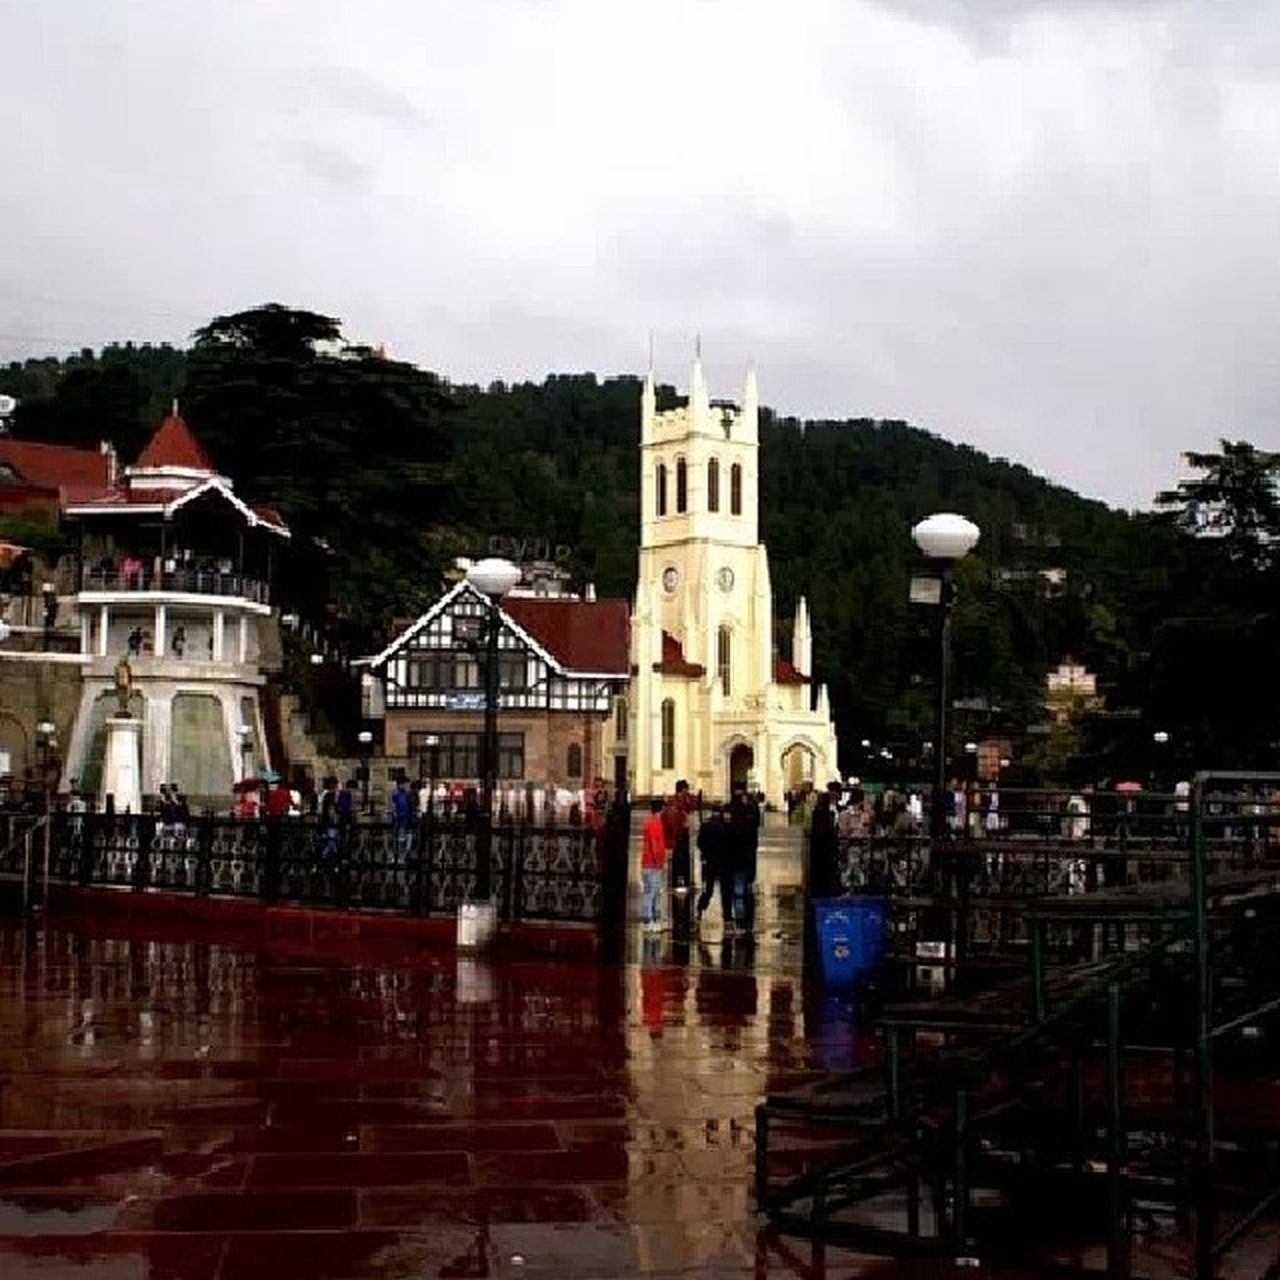 Shimla Rain Theridge Church Scandalpoint Townleave Schooltym memories 2012